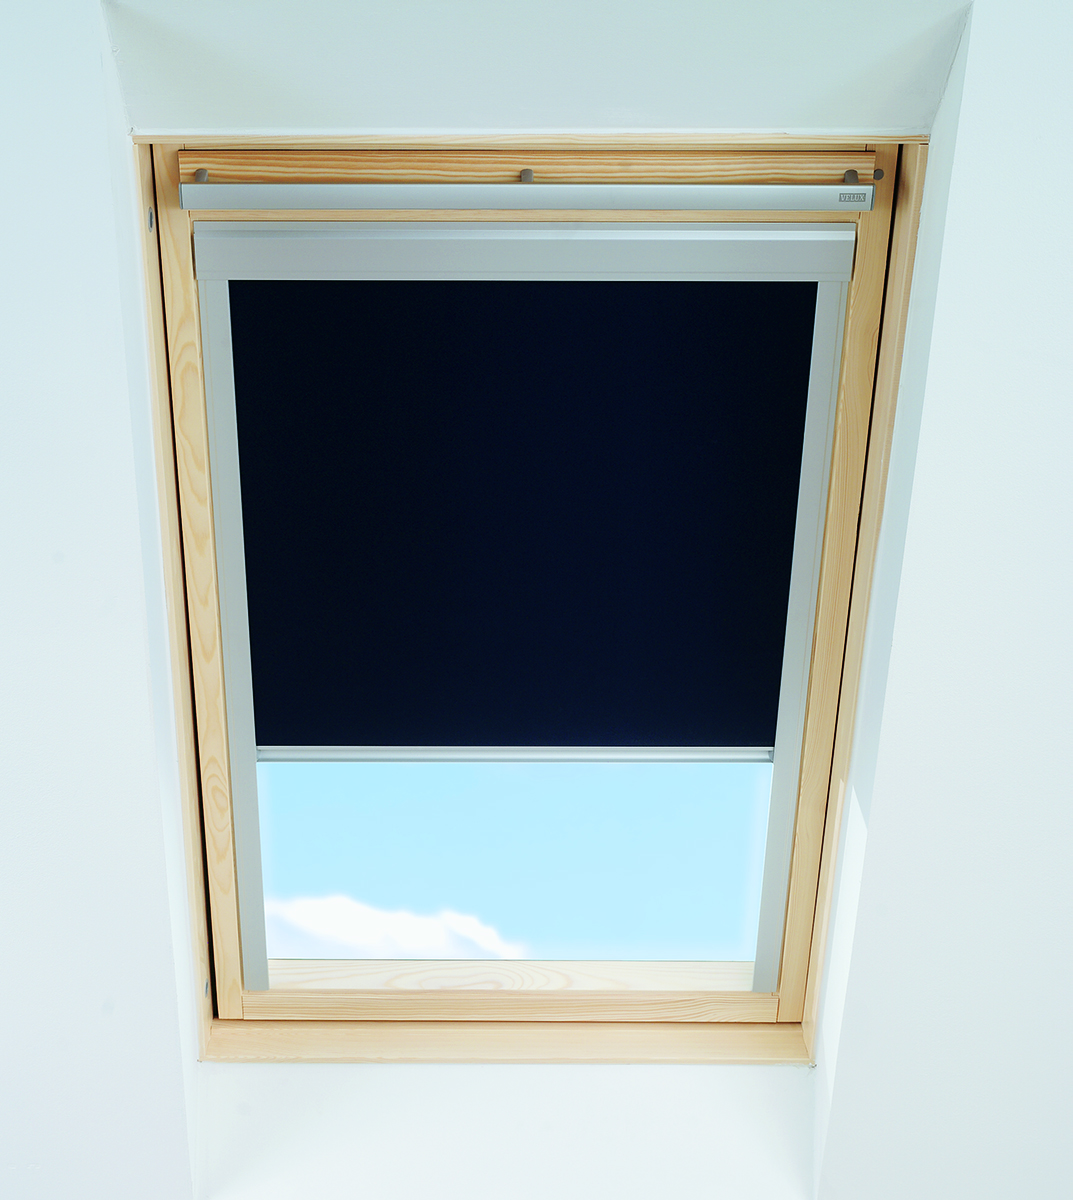 velux teleskop bedienungsstange f r velux dachfenster und rollos zct 200k ebay. Black Bedroom Furniture Sets. Home Design Ideas